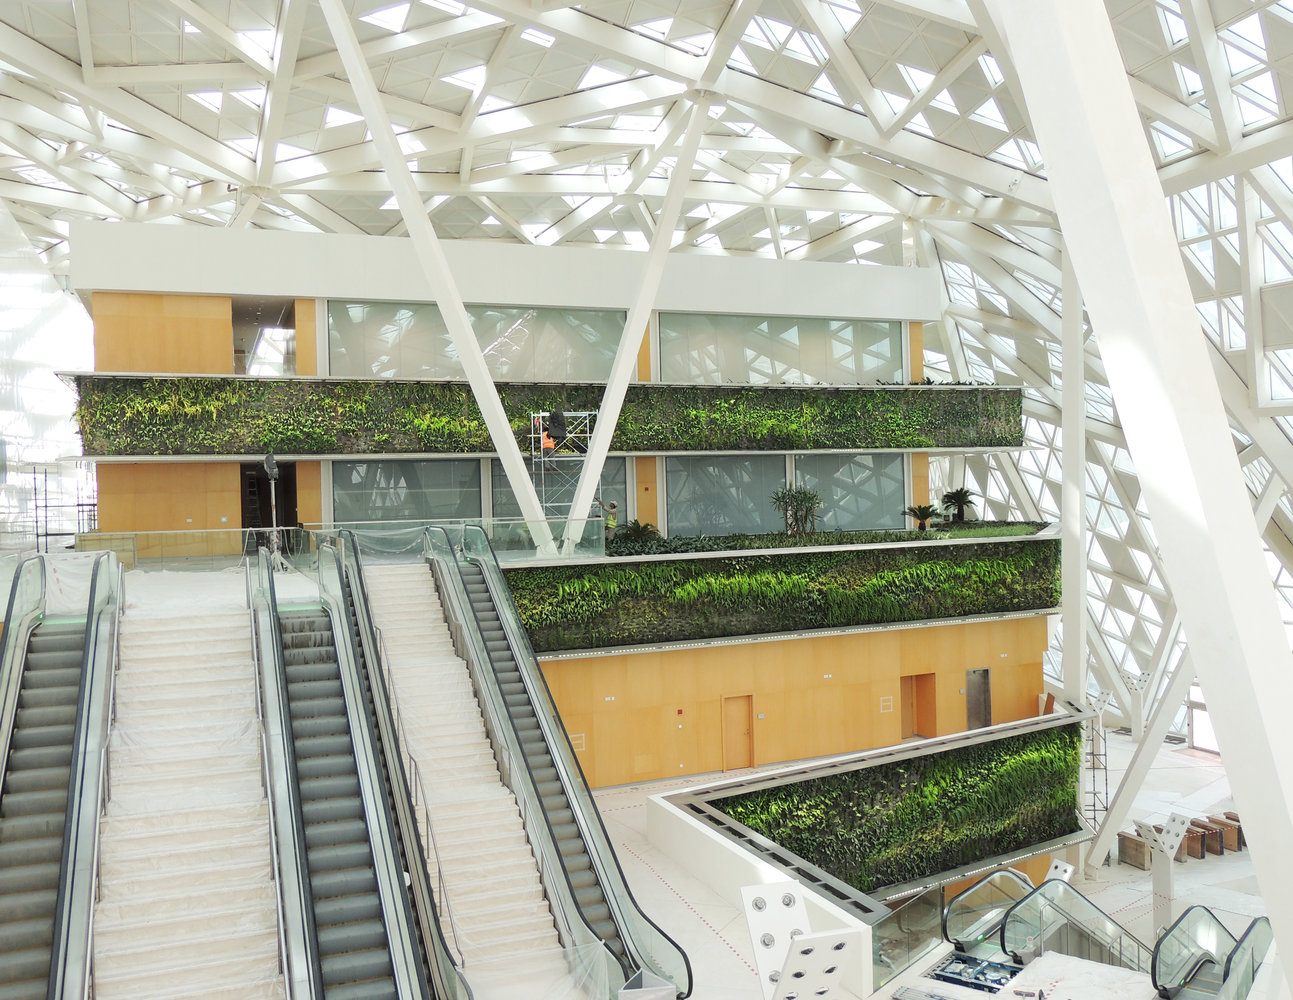 indoor vertical gardens at the kafd conference center riyadh